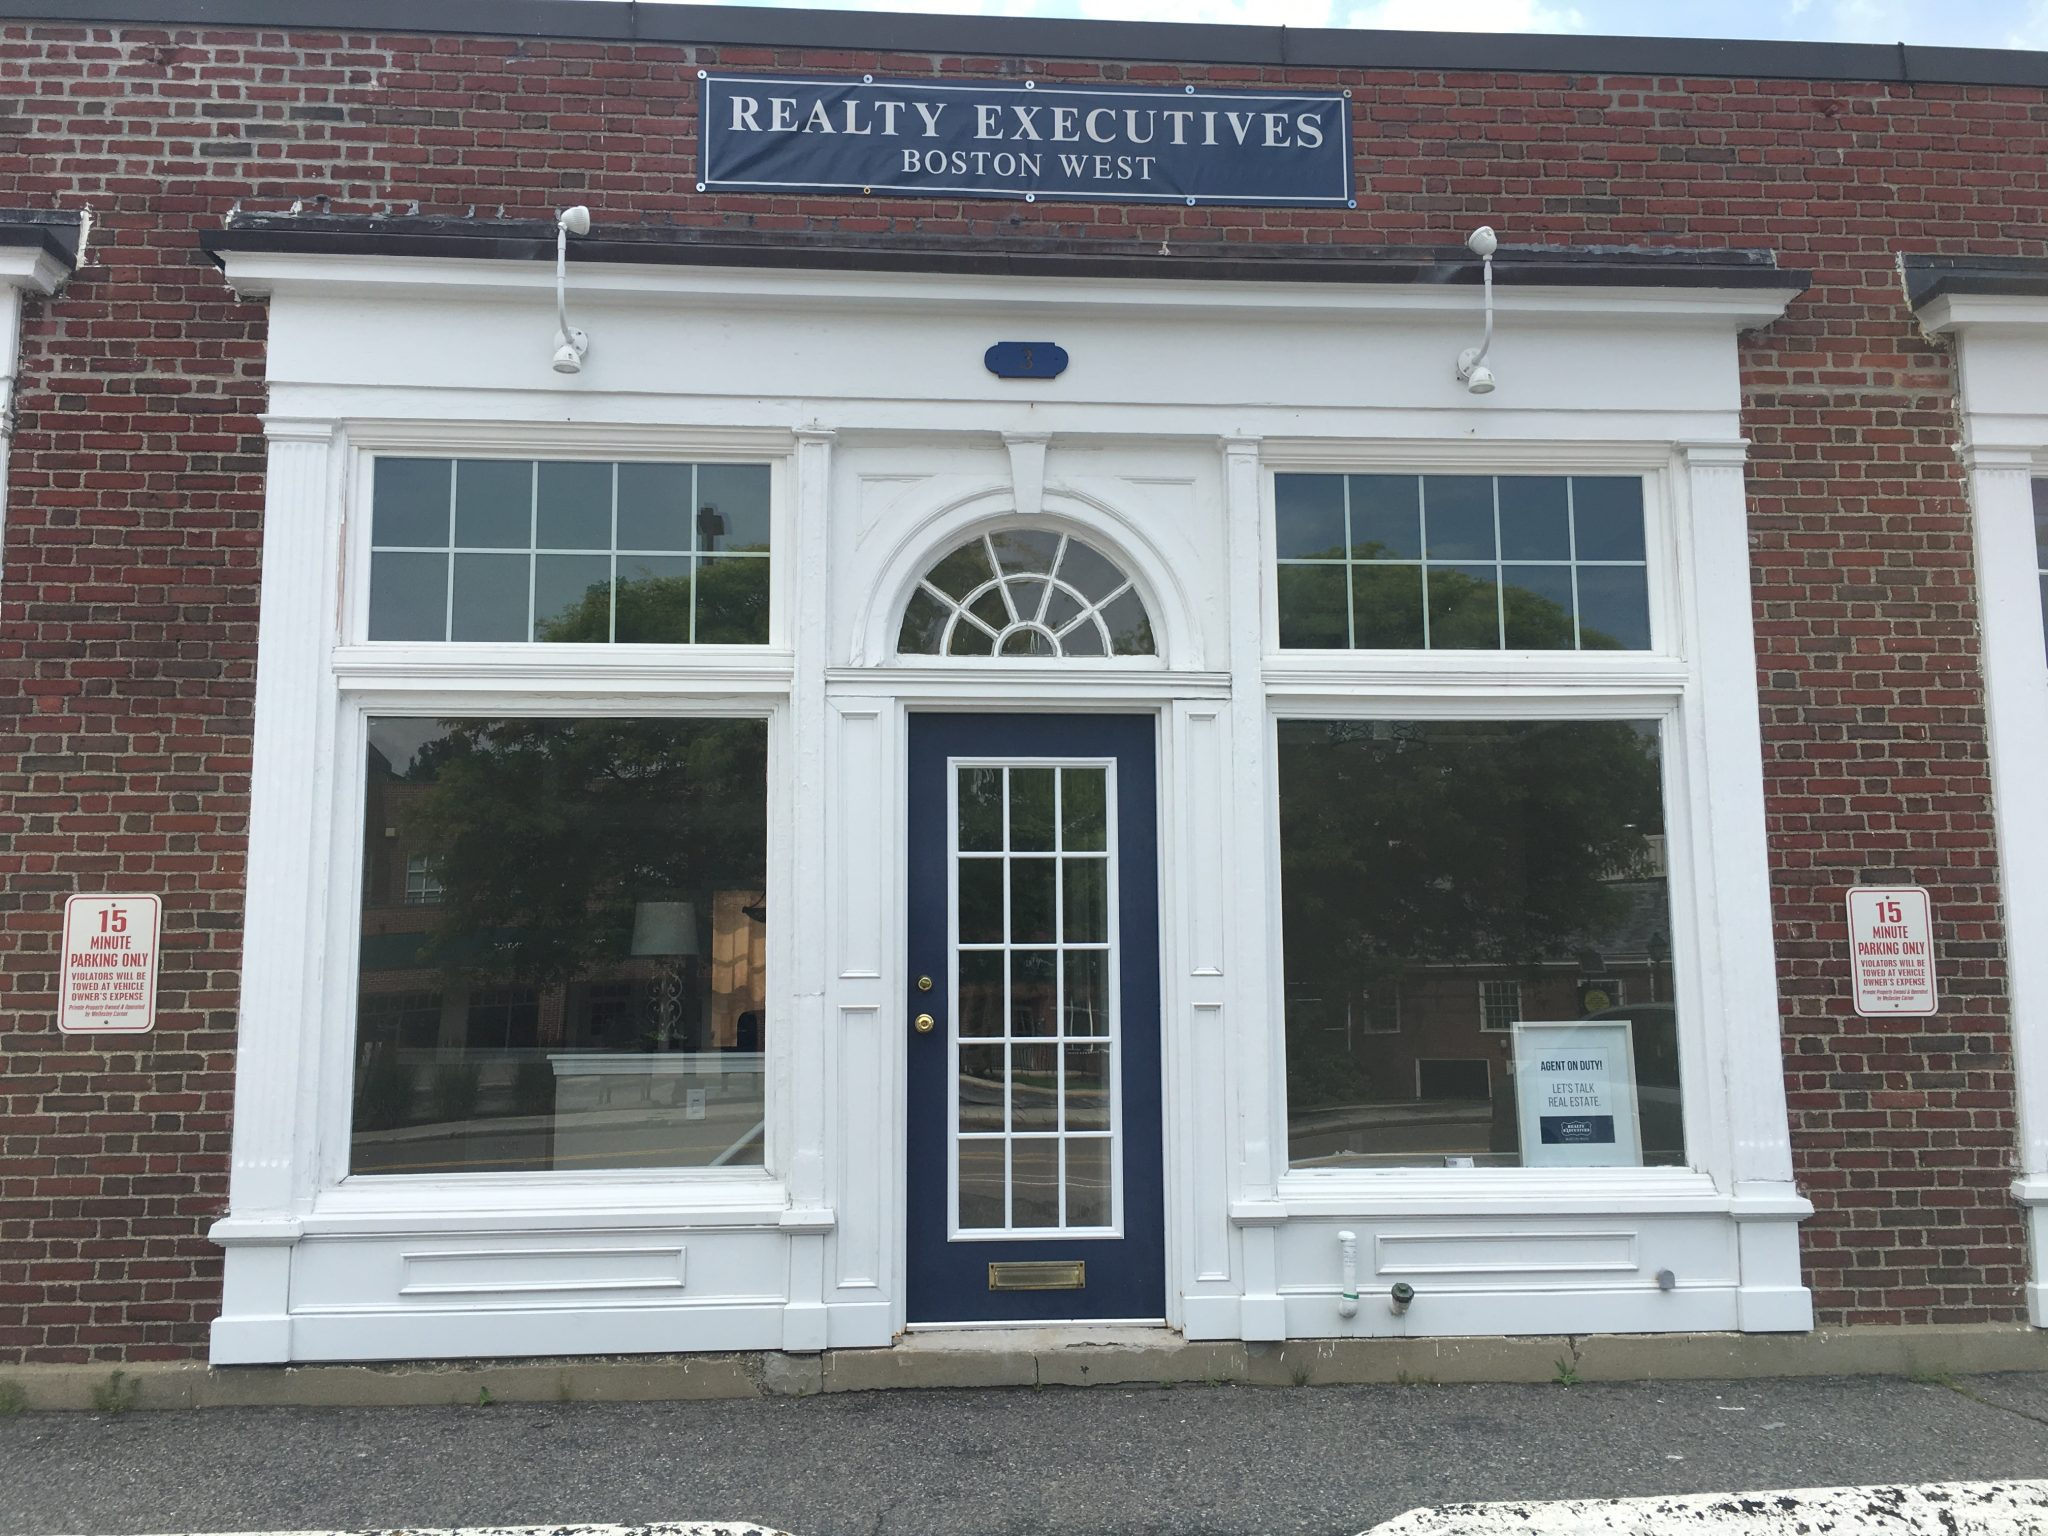 Wellesley Executives real estate agency